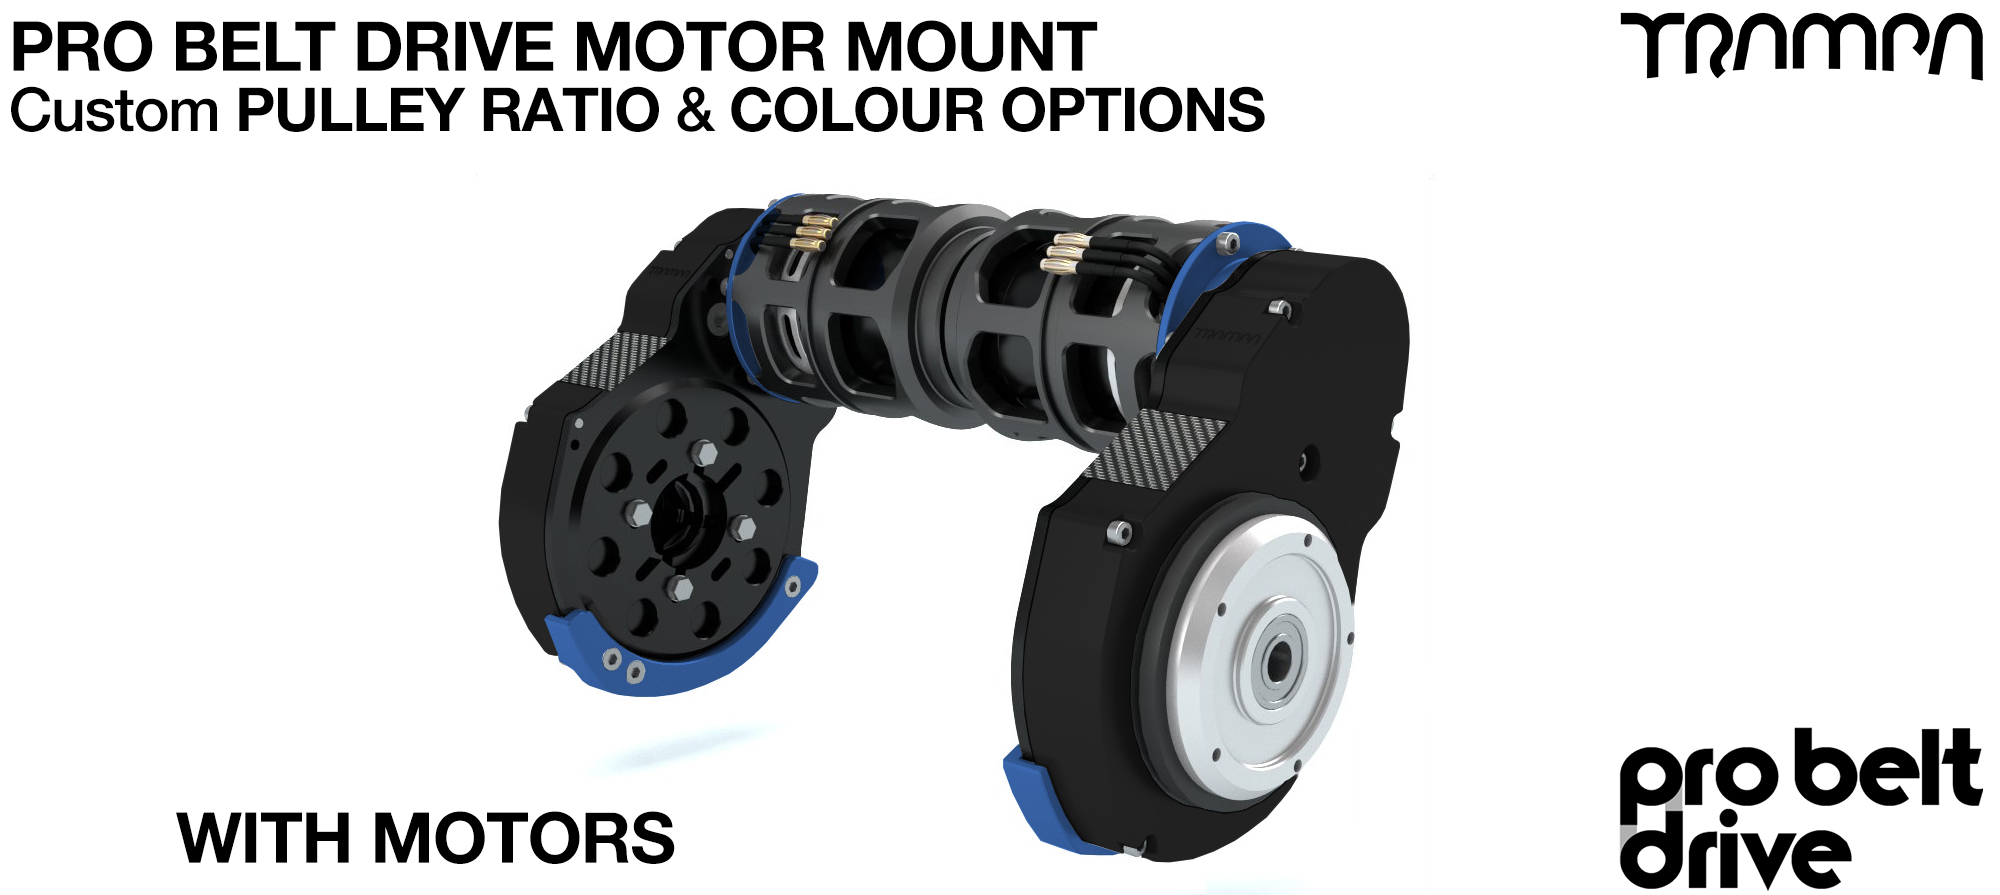 Mountainboard PRO Belt Drive TWIN Motor Mounts - with Motors